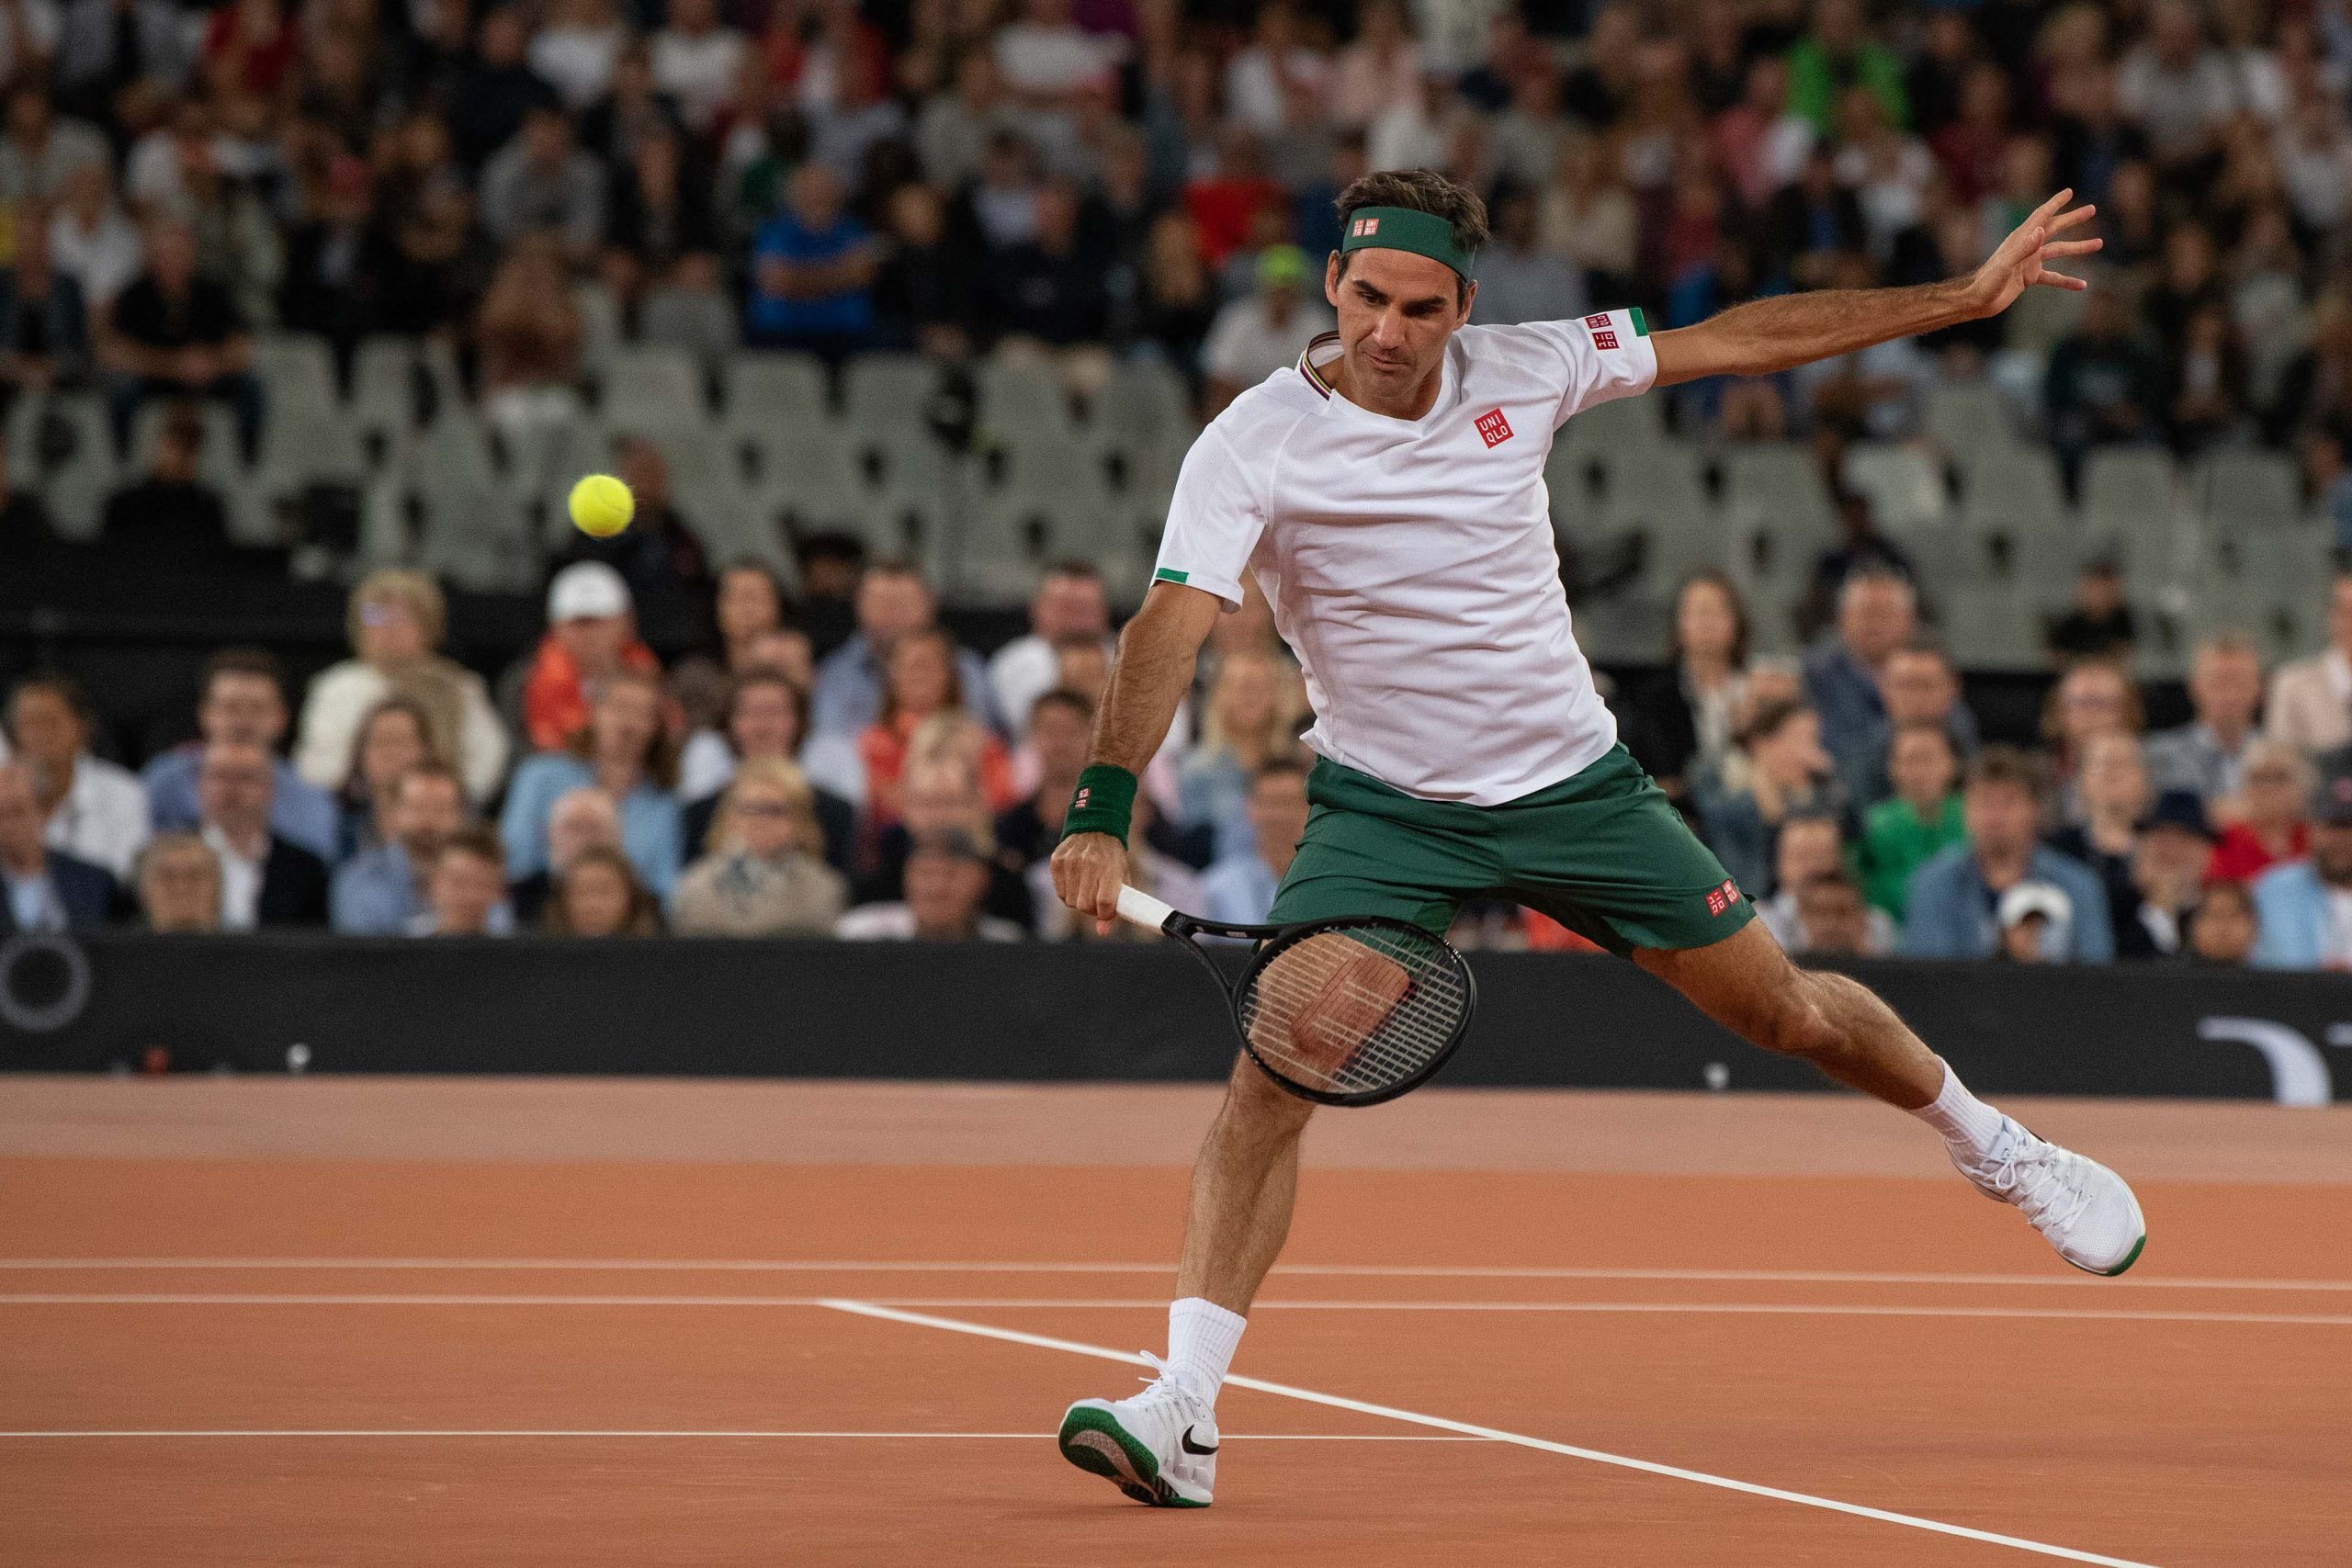 7 February 2020: The proceeds from the event all went to the Roger Federer Foundation in support of rural education in Southern Africa.